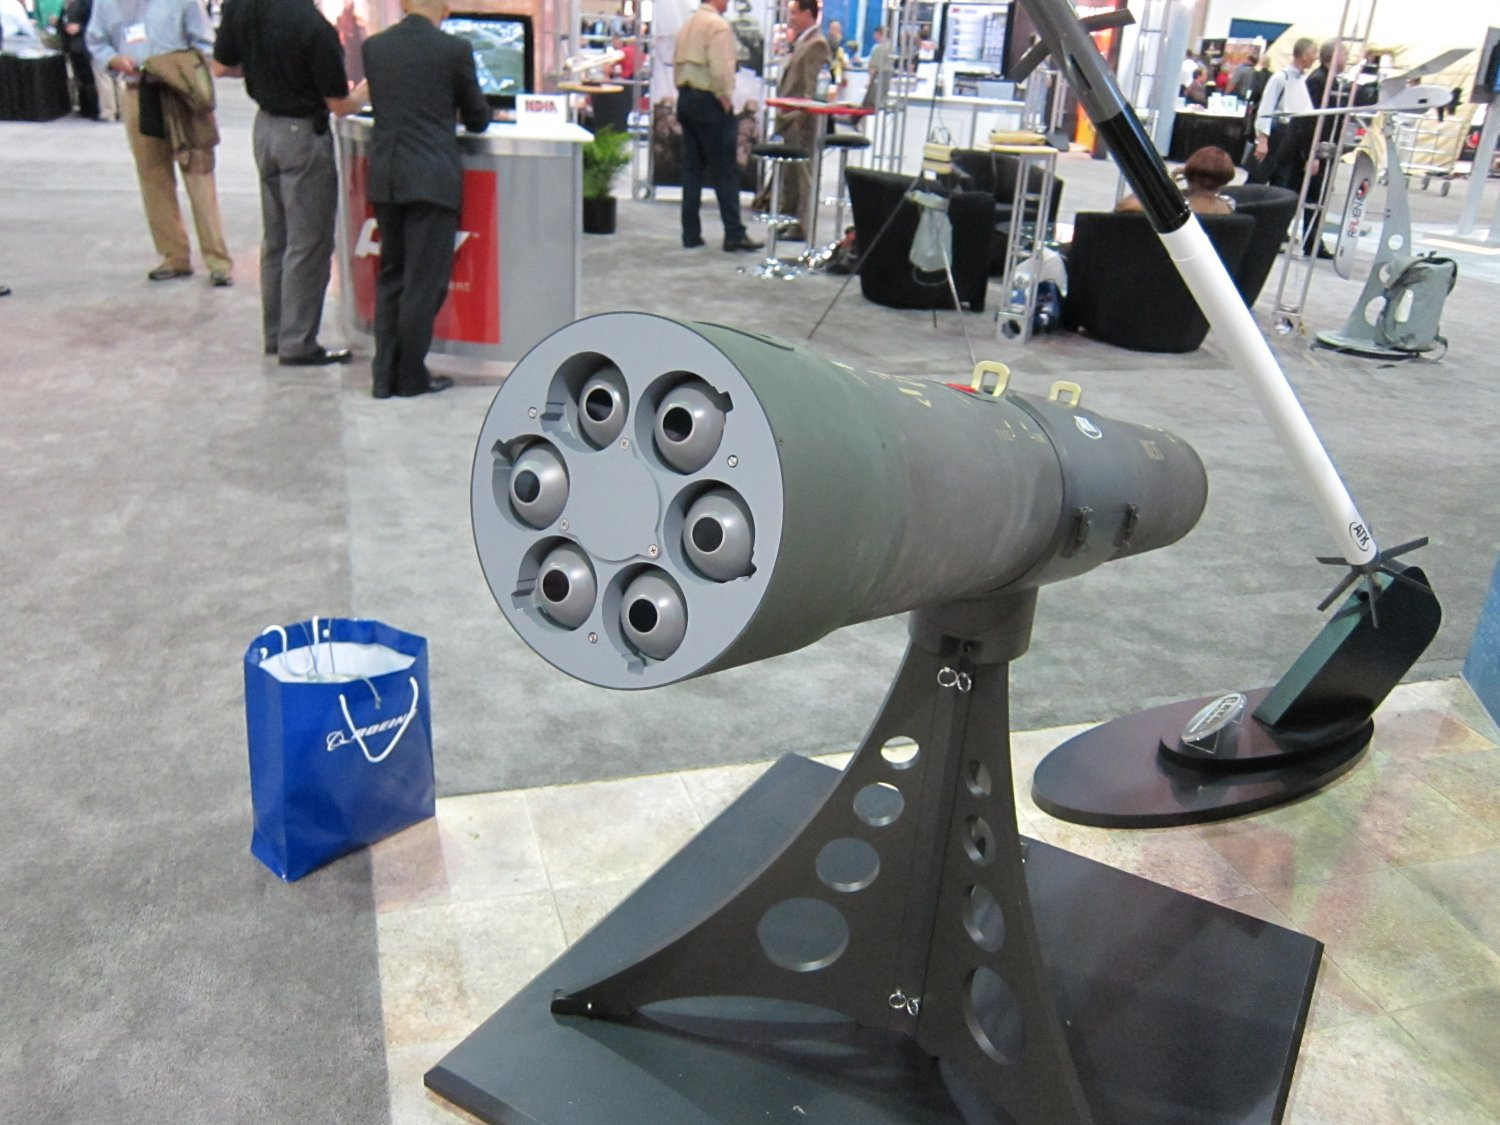 Northrop Grumman ATK Venom Targeting Pod and Guided 2.75 Inch Rocket Pod System 8 <!  :en  >Northrop Grumman/ATK VENOM Targeting Pod Armed with 6 Round GATR L Tactical Precision Guided (Laser Guided) 2.75/70mm Hydra Rocket Pod for Military Special Operations (SPECOPS)<!  :  >